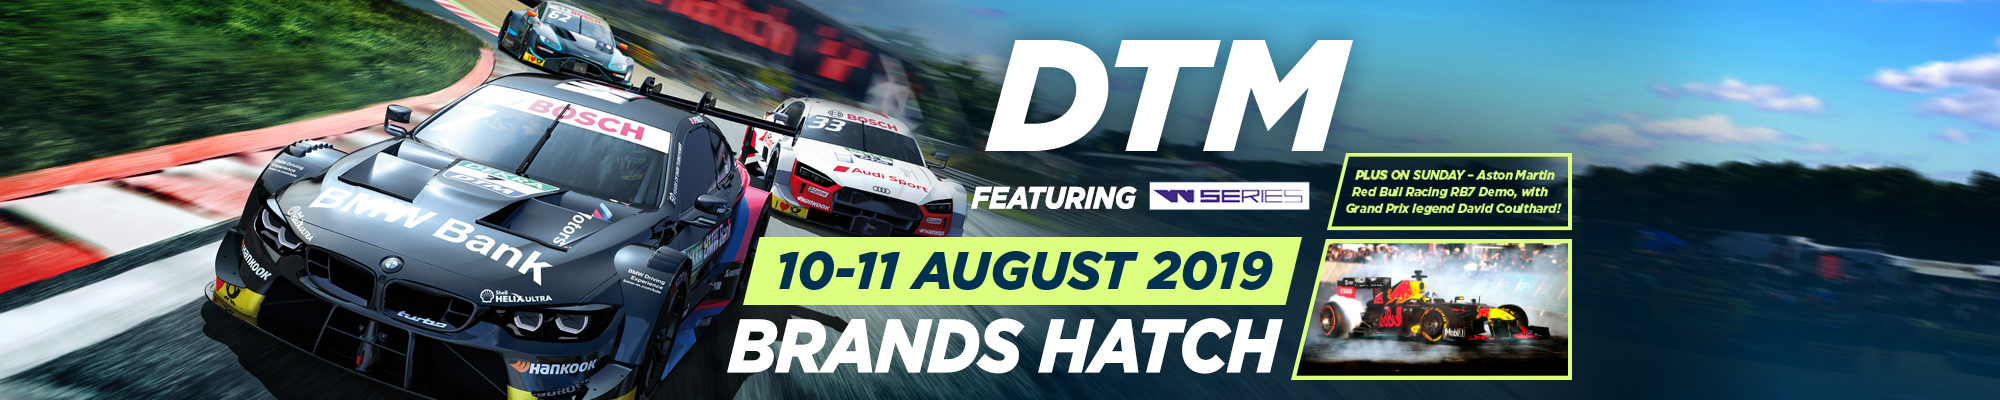 DTM (German Touring Cars) and W Series